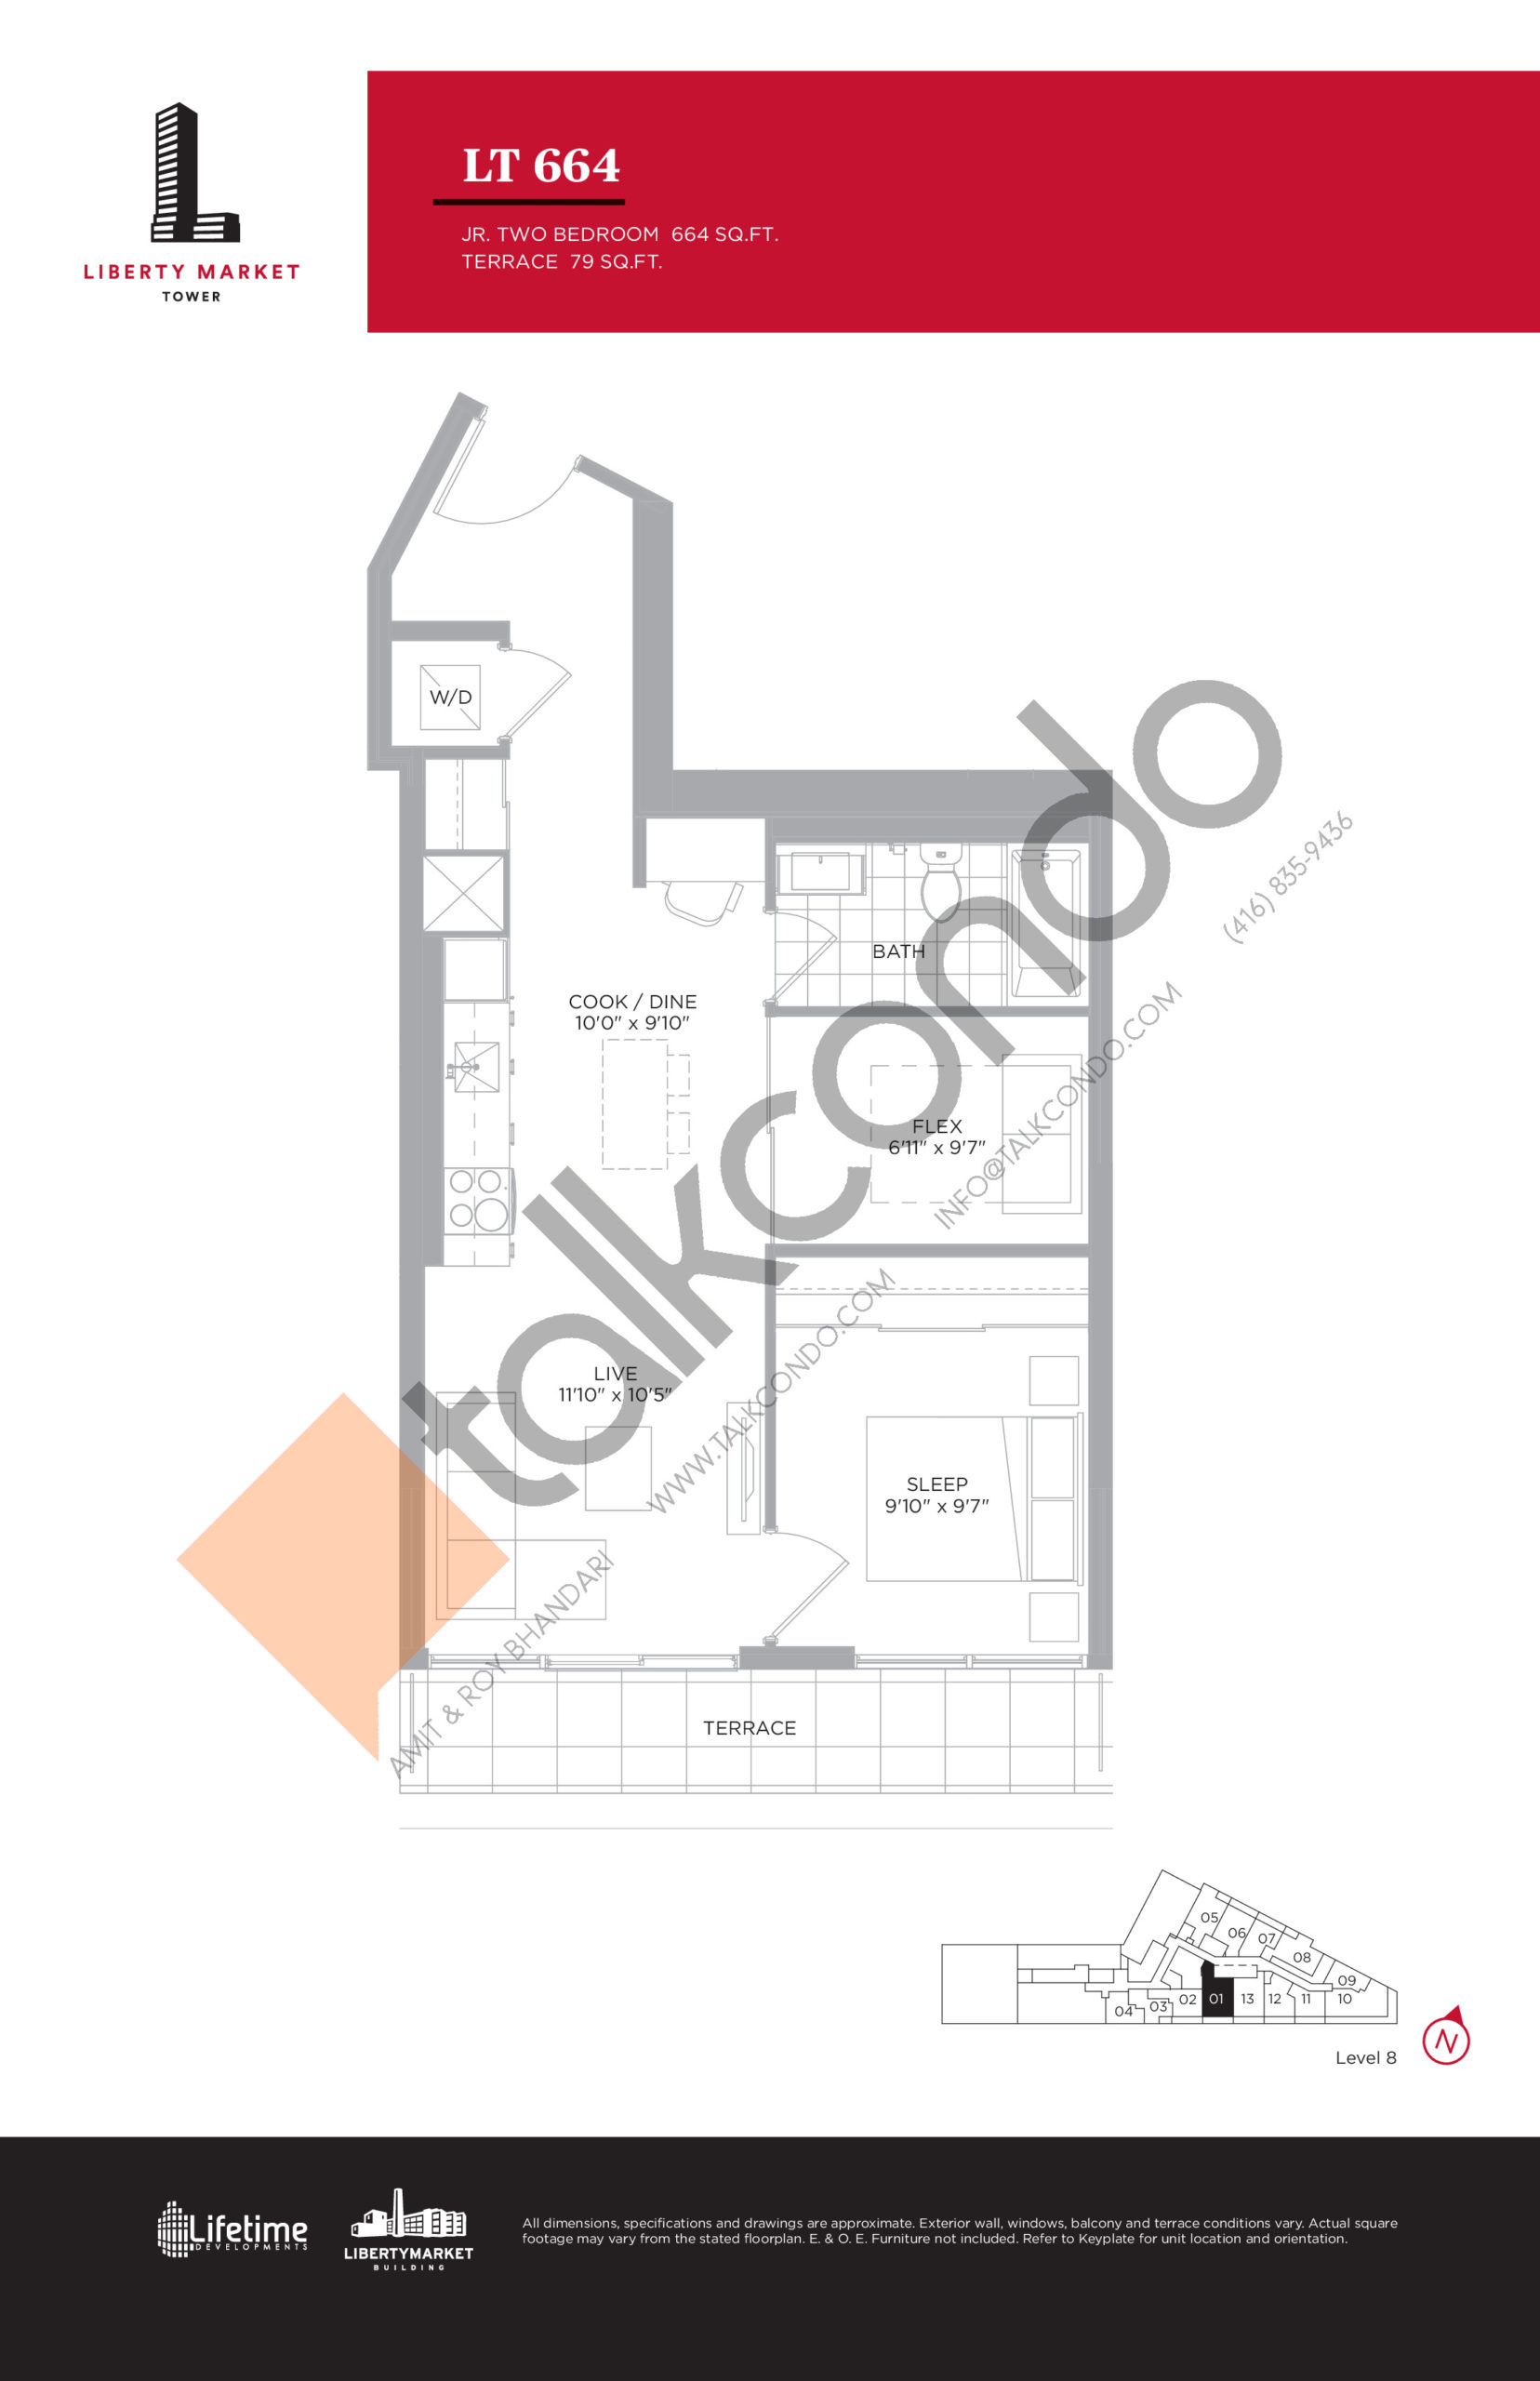 LT 664 - Terrace Collection Floor Plan at Liberty Market Tower Condos - 664 sq.ft